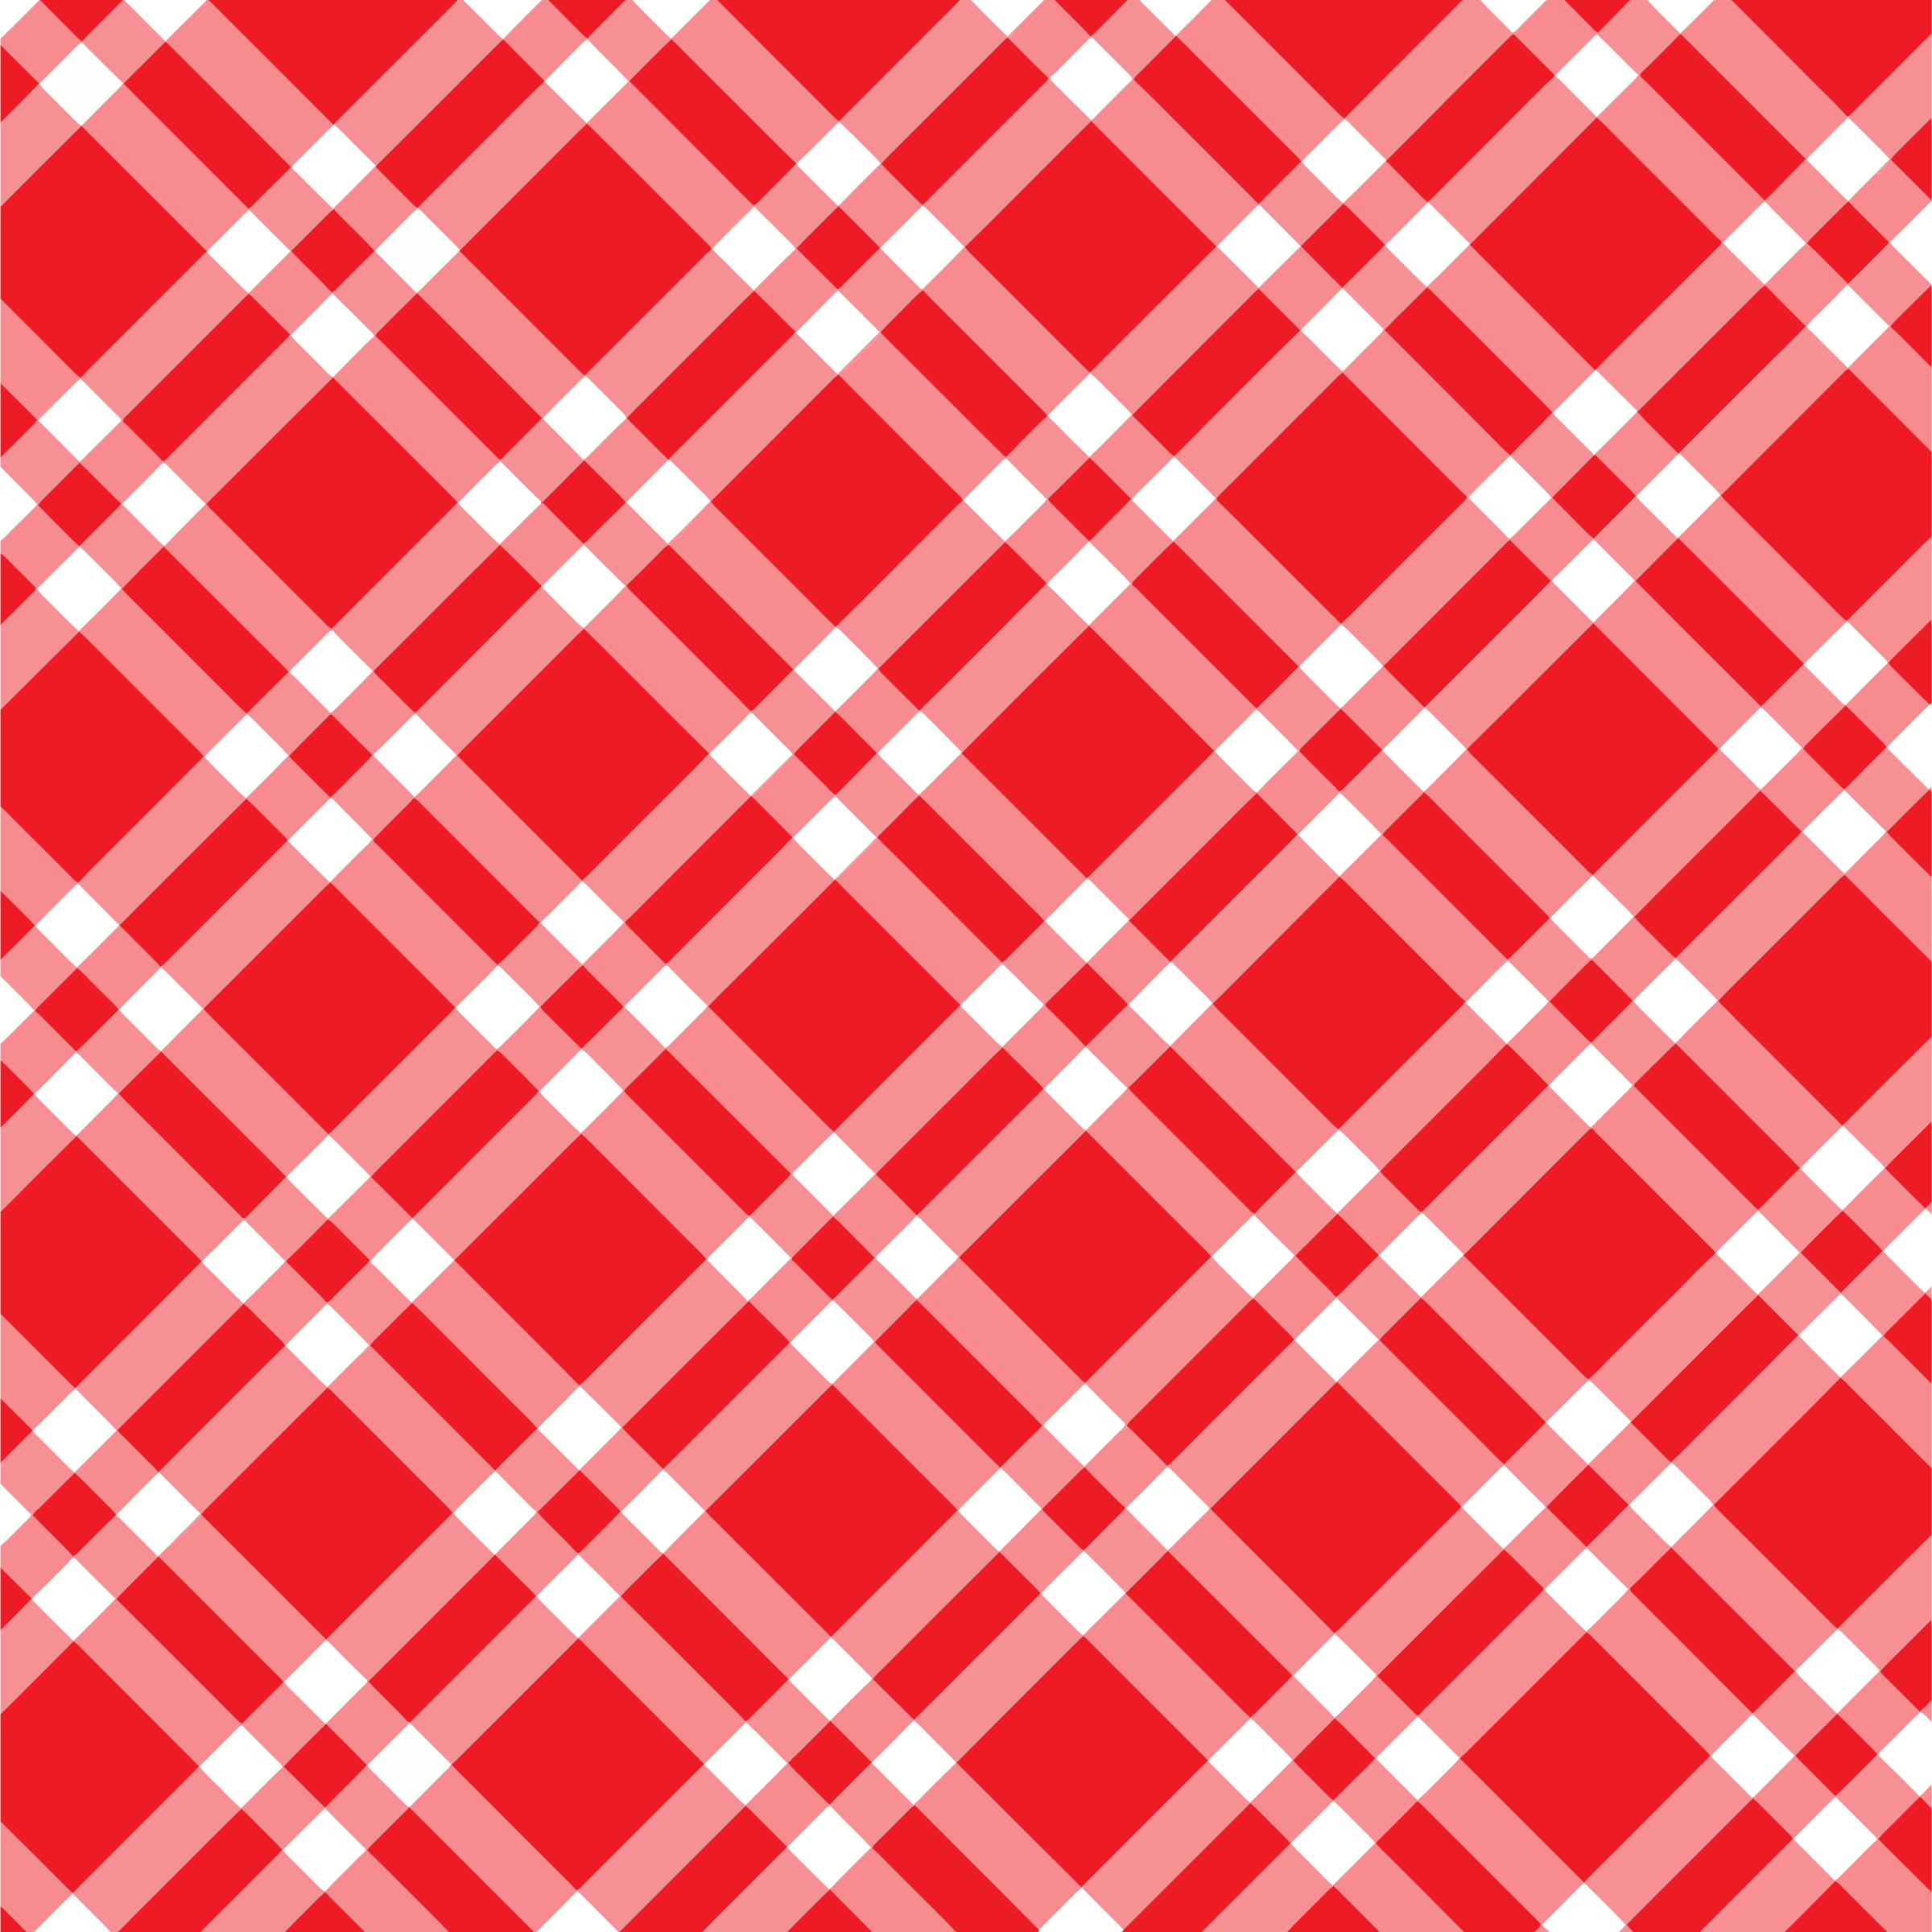 Plaid clipart gingham Gingham Clipart Red Checkered Red